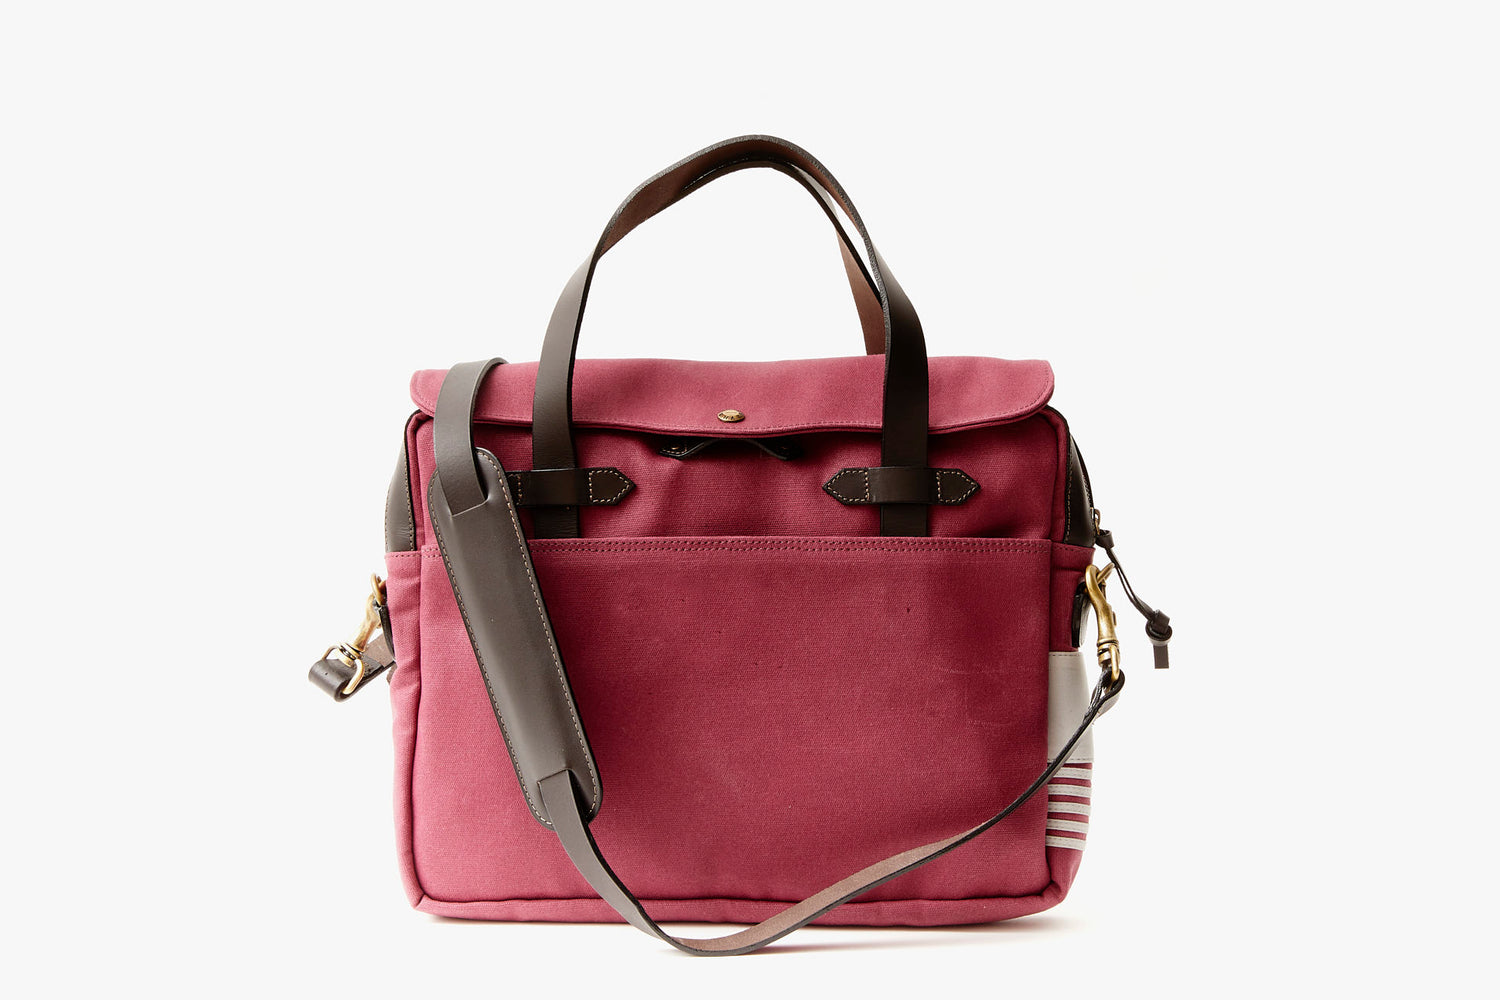 Long Wharf Supply Co. Newport Briefcase - Maroon - Front view of briefcase, upright, showing top handles and shoulder strap